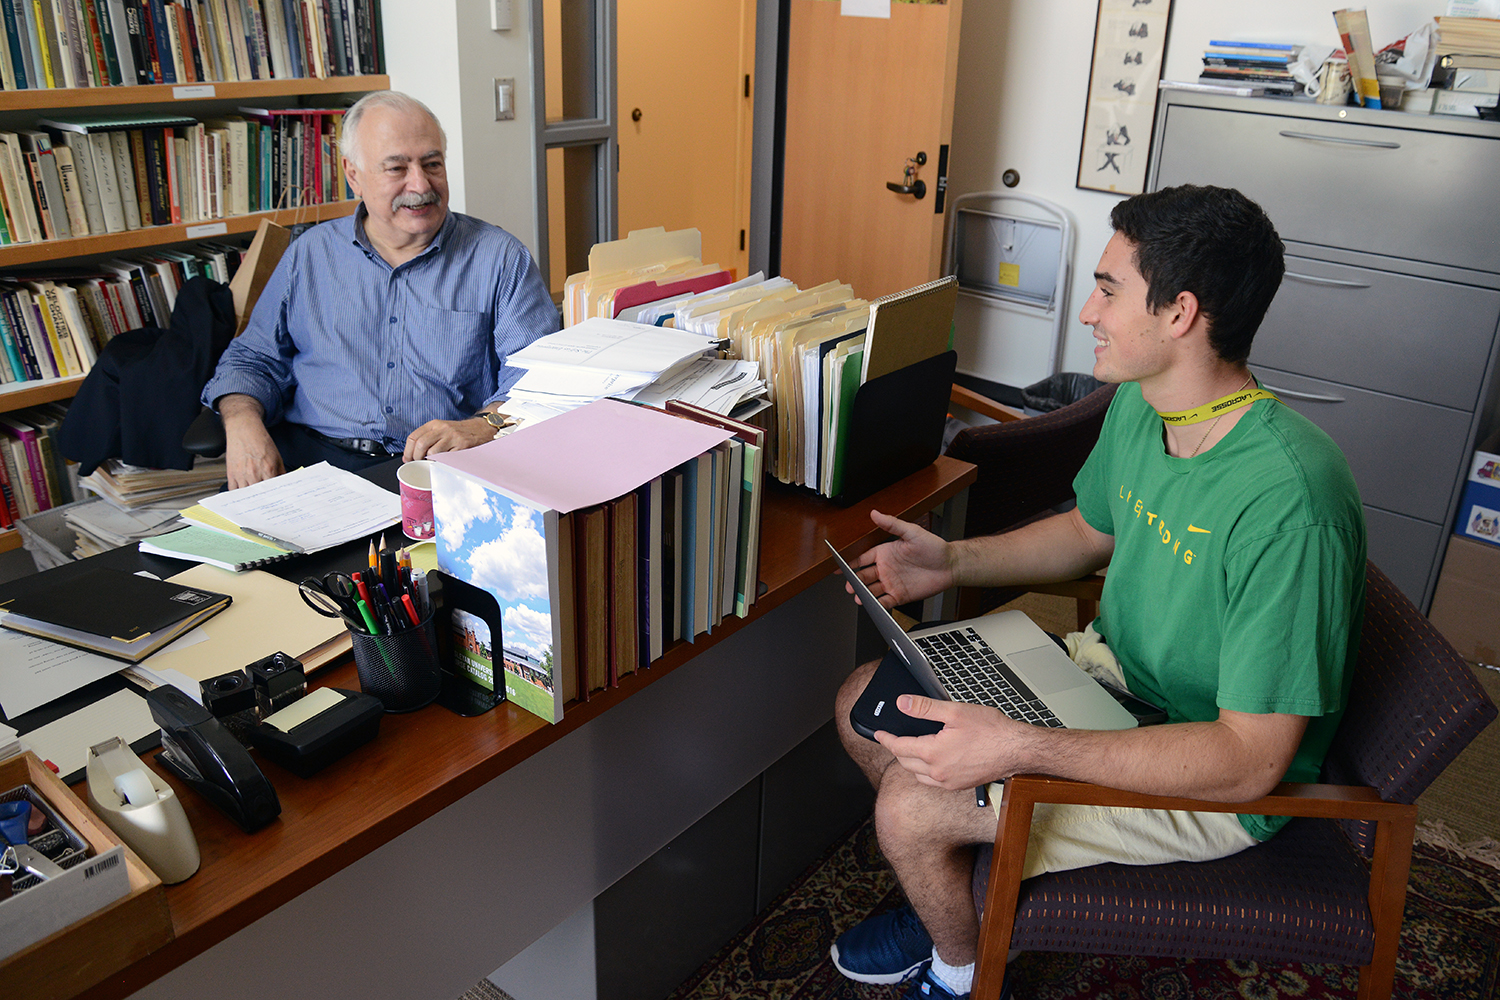 Khachig Tölölyan, director of the College of Letters, professor of letters, professor of English, met with John Cote '19.